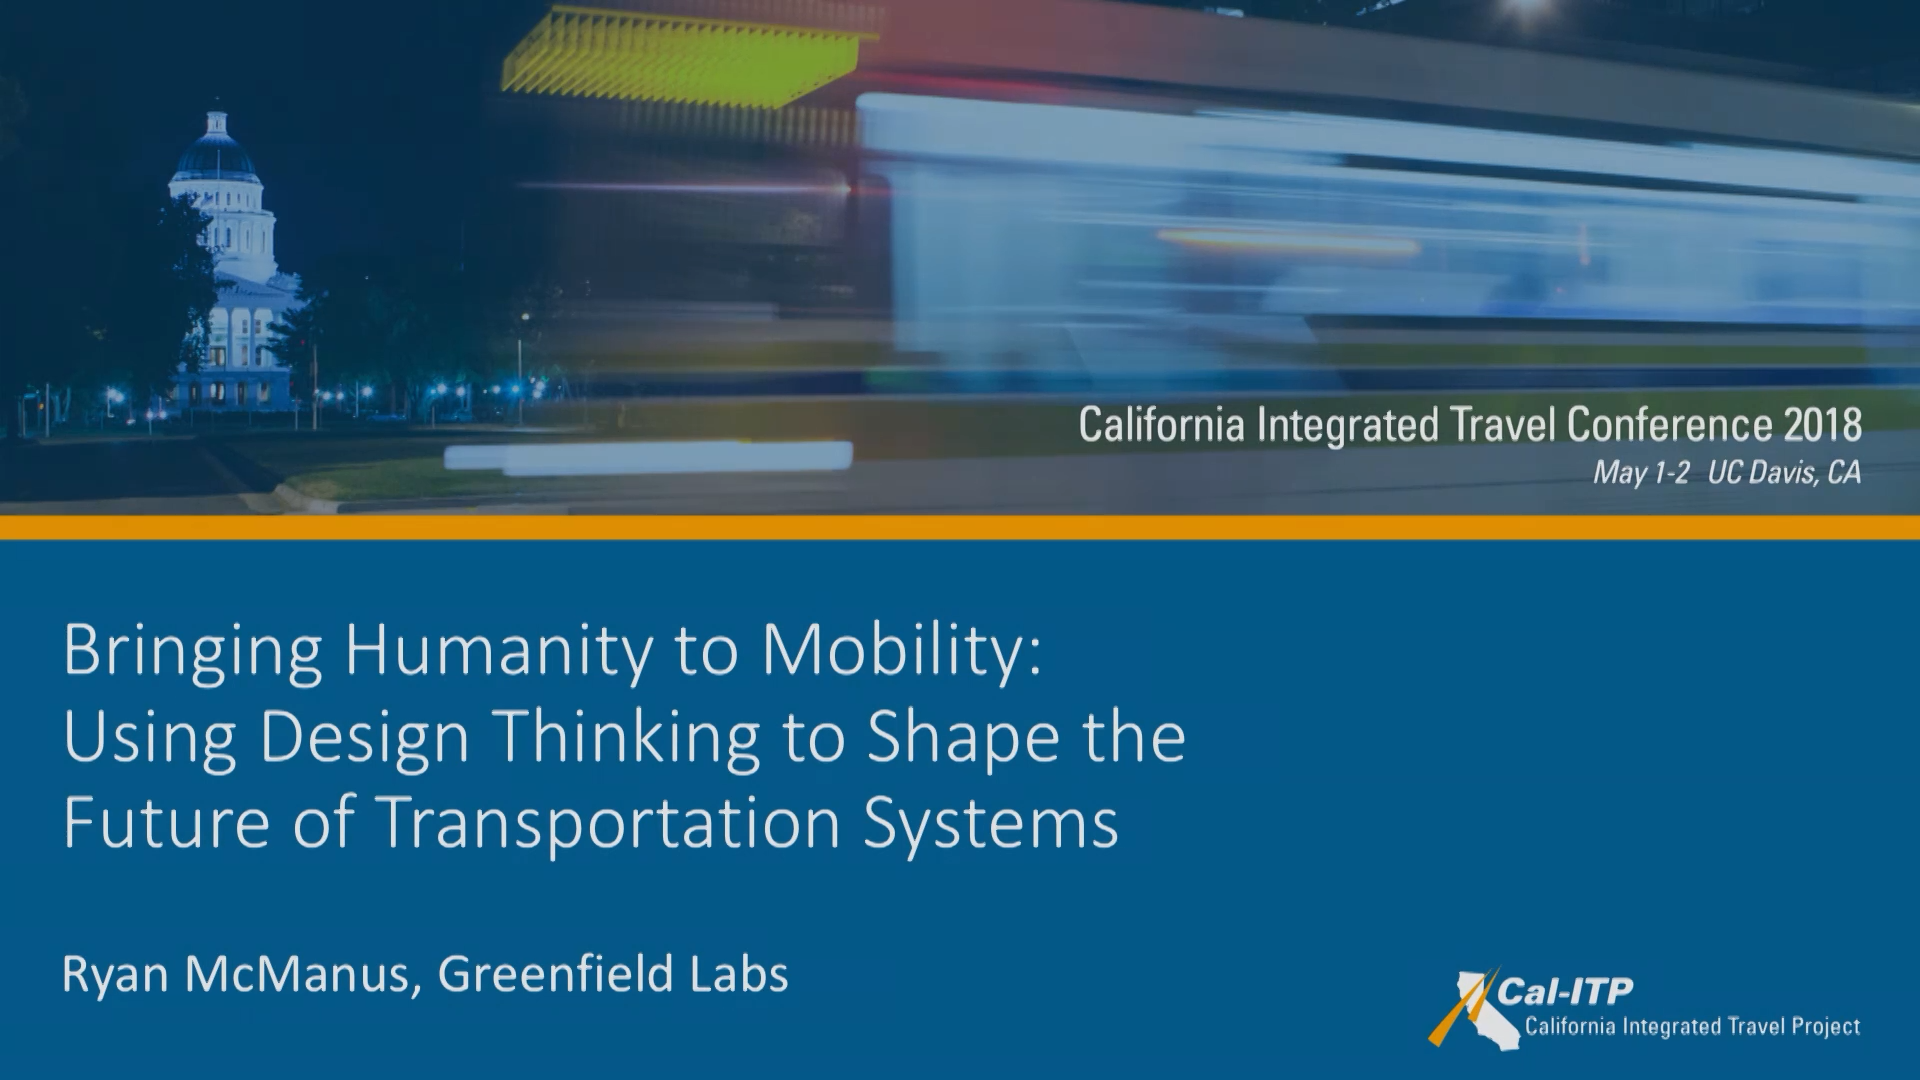 24. Bringing Humanity to Mobility